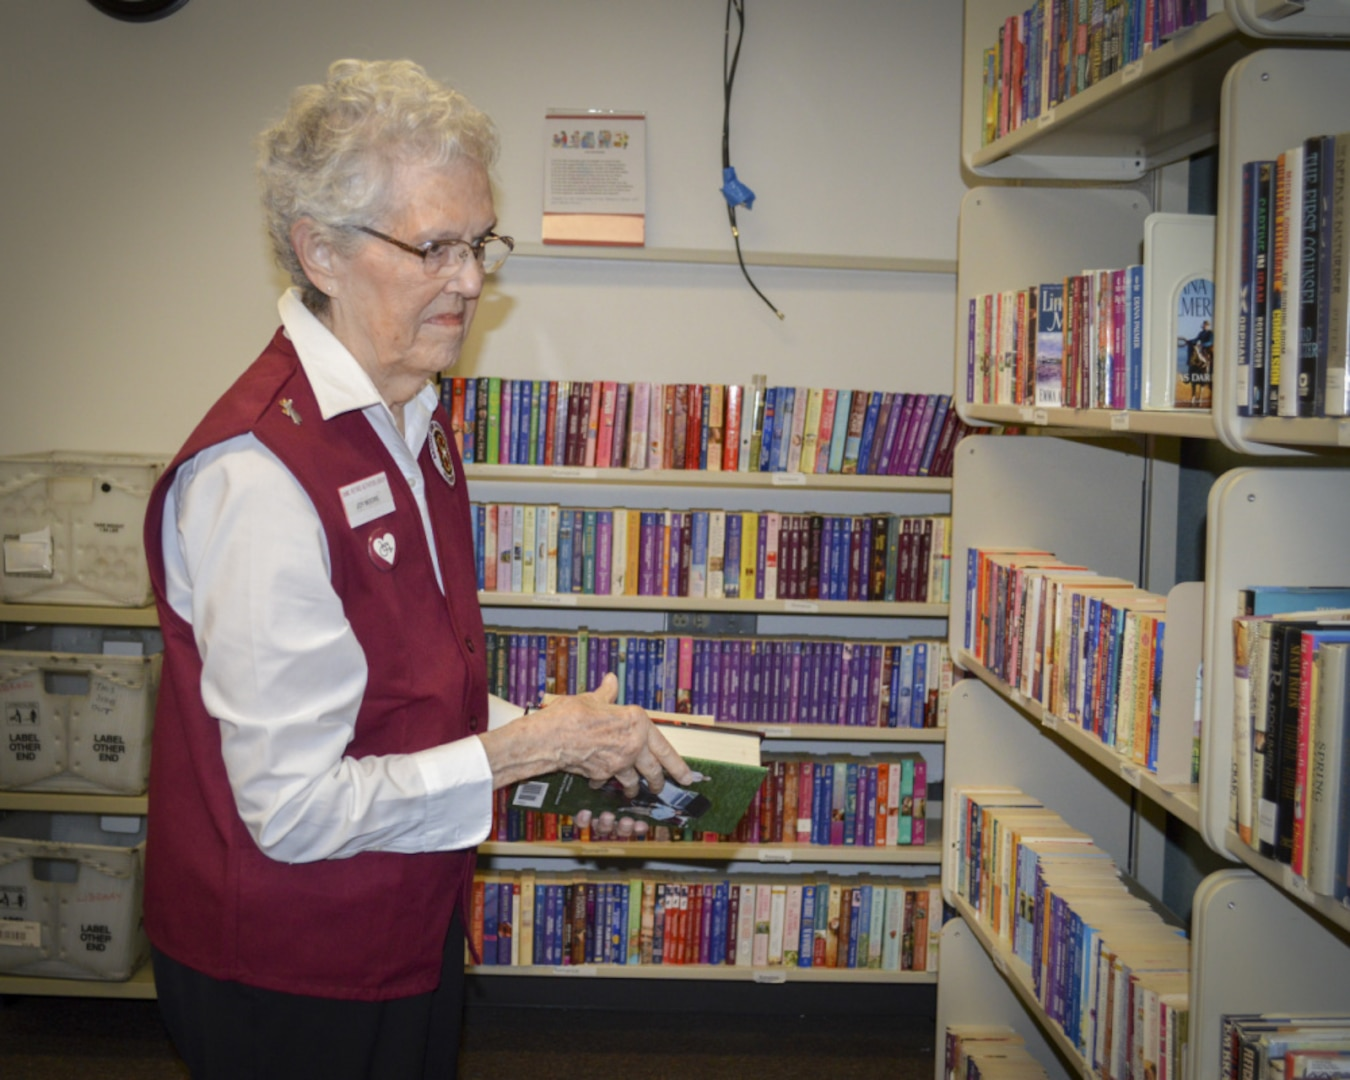 Joy Moore, volunteer, sorts books in the Patient Library at Brooke Army Medical Center.